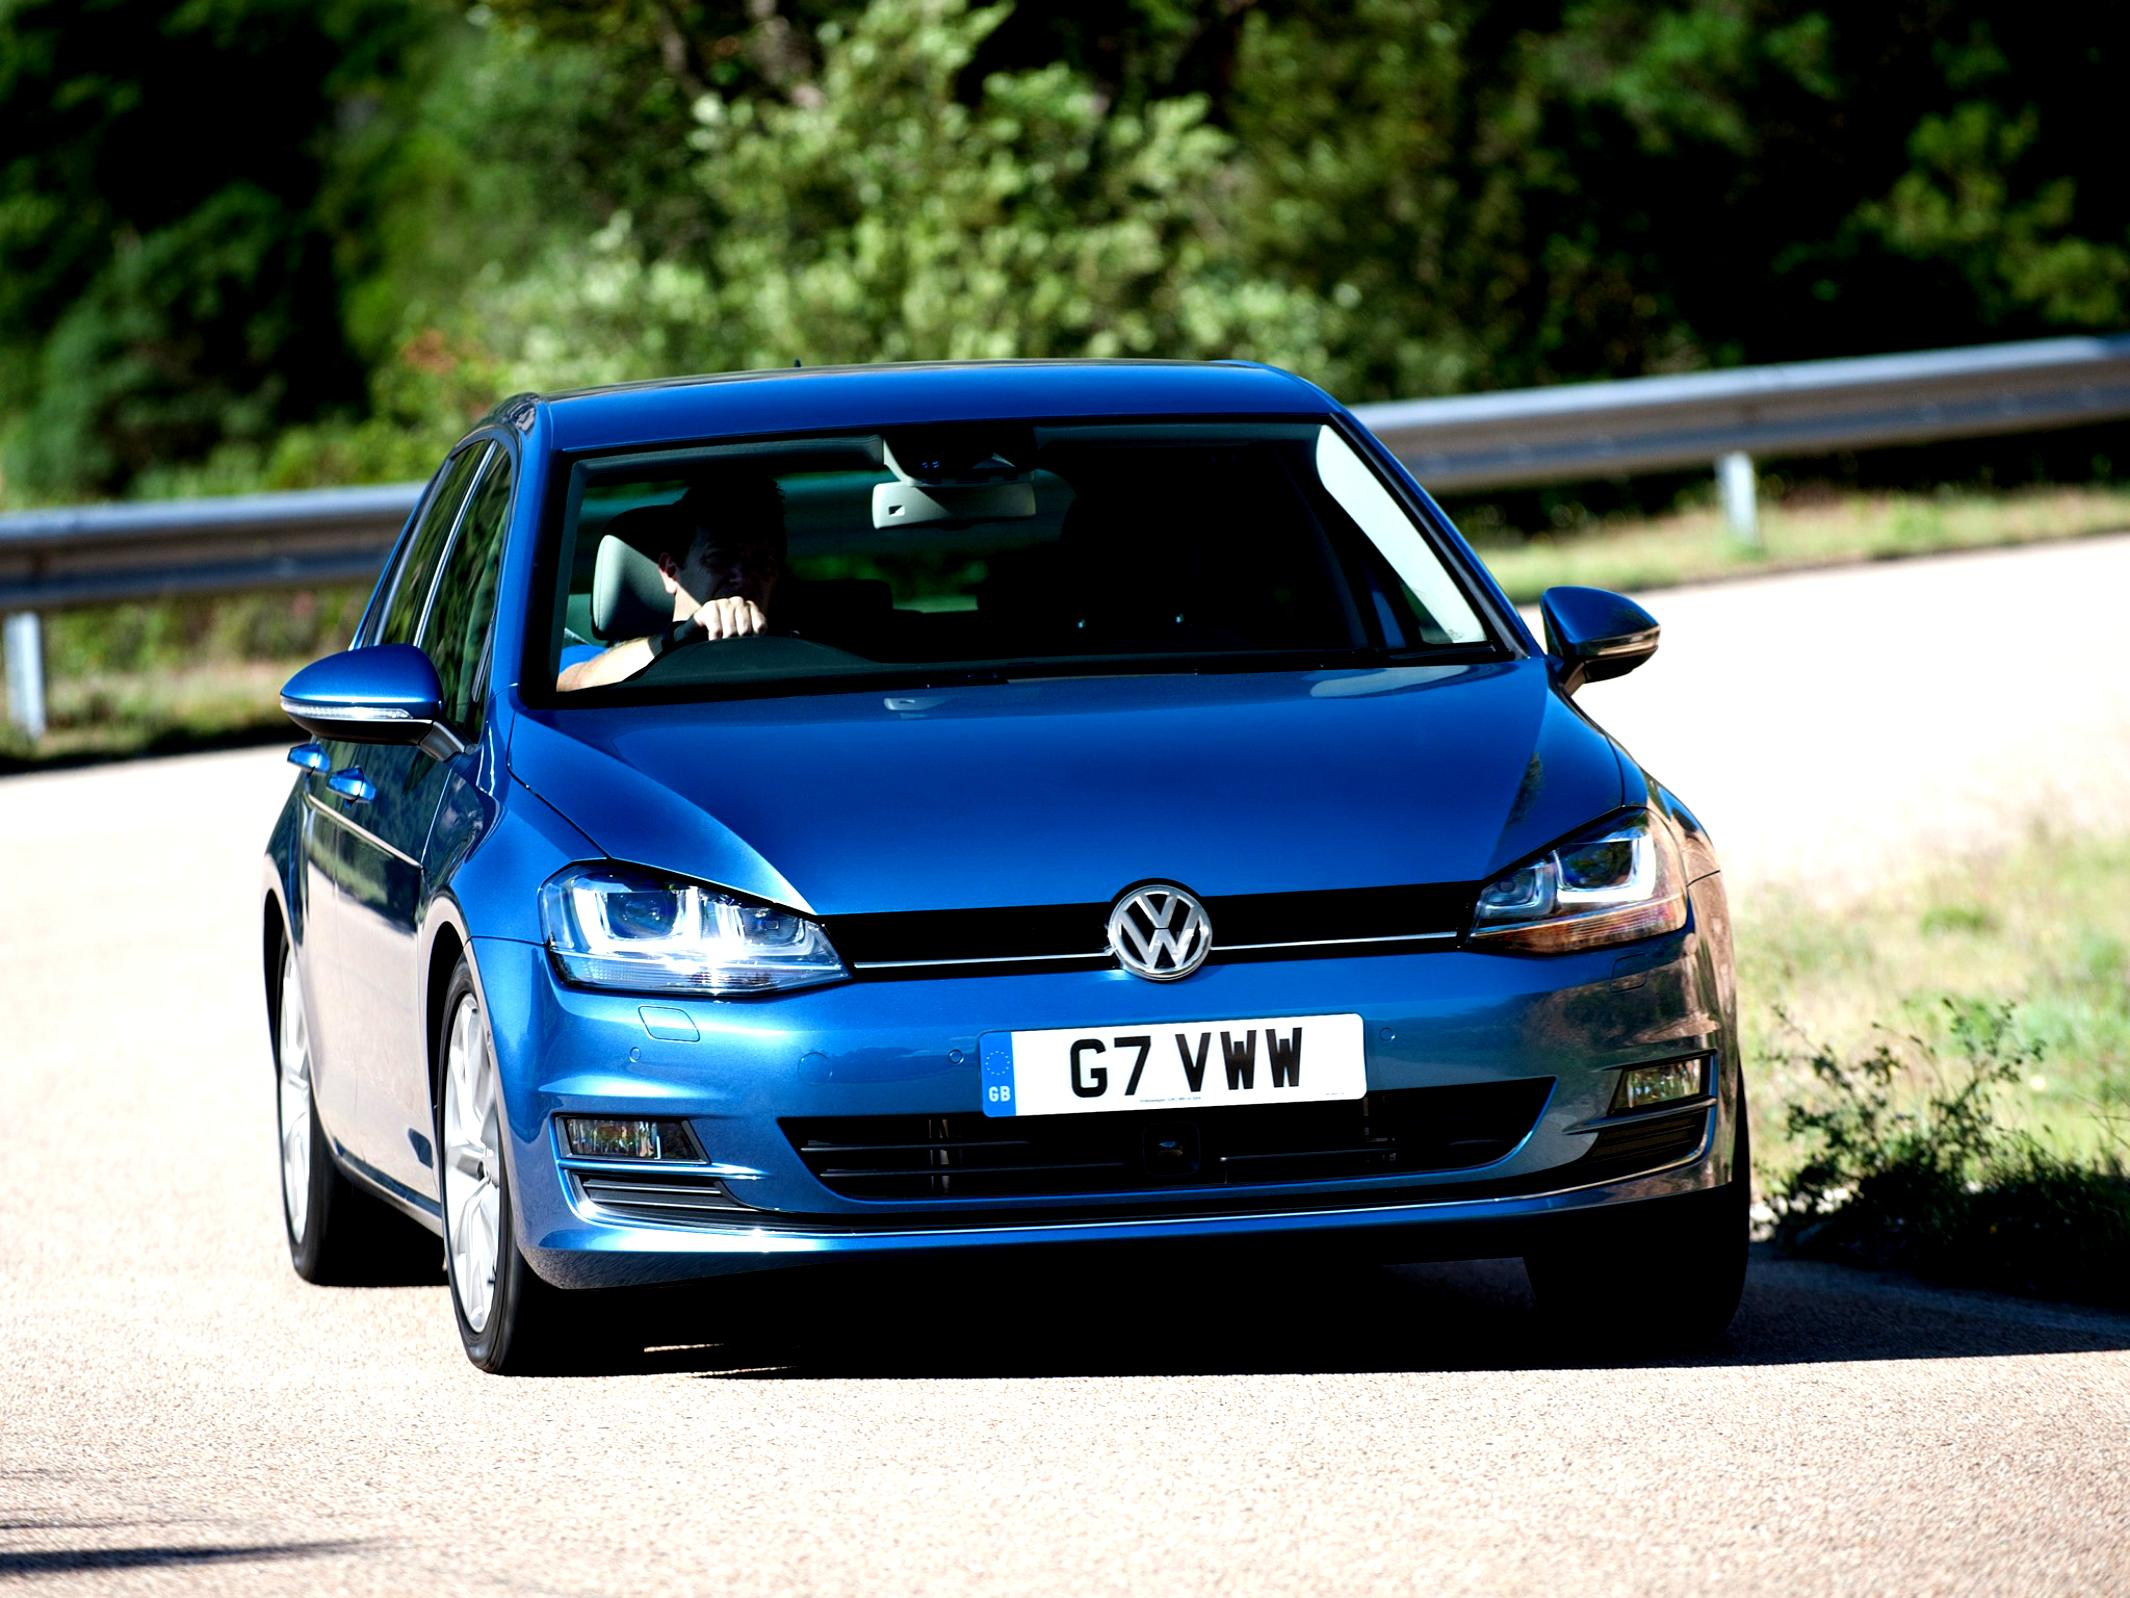 Volkswagen Golf VII 5 Doors 2012 #50